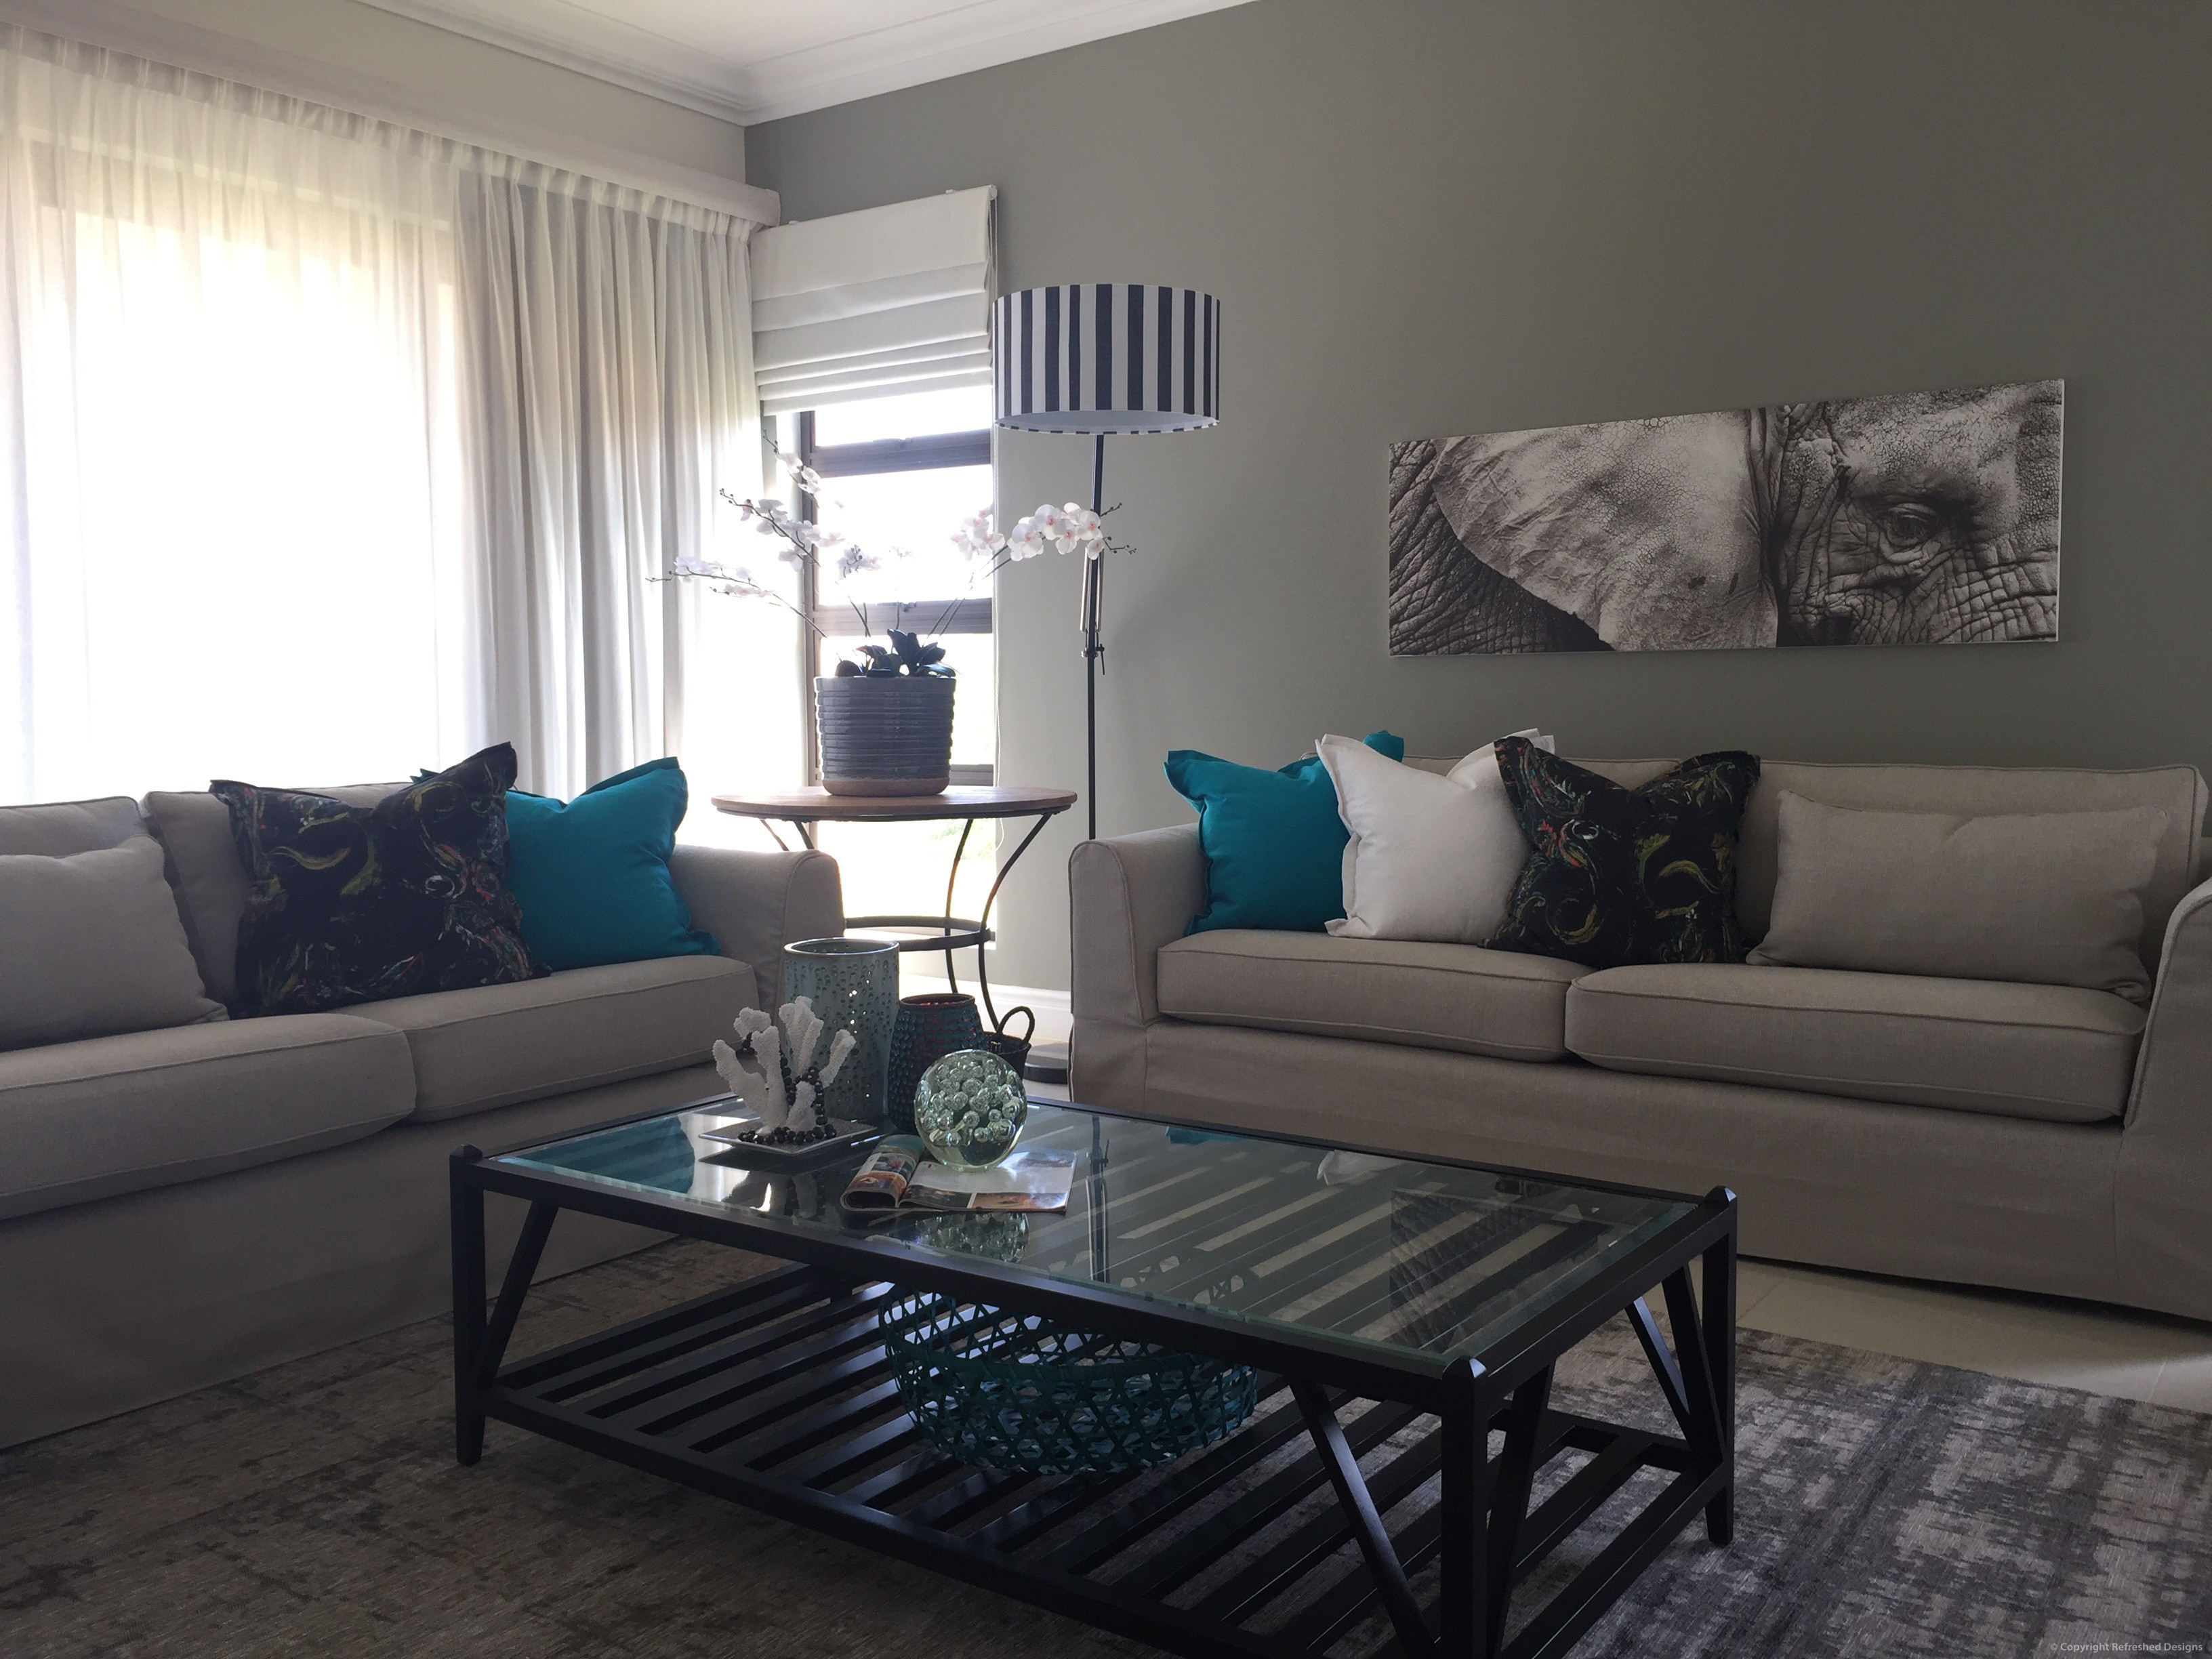 Refreshed Designs, Interior decor, lounge, coffee table, furniture, couch, scatters, floor lamp, orchid